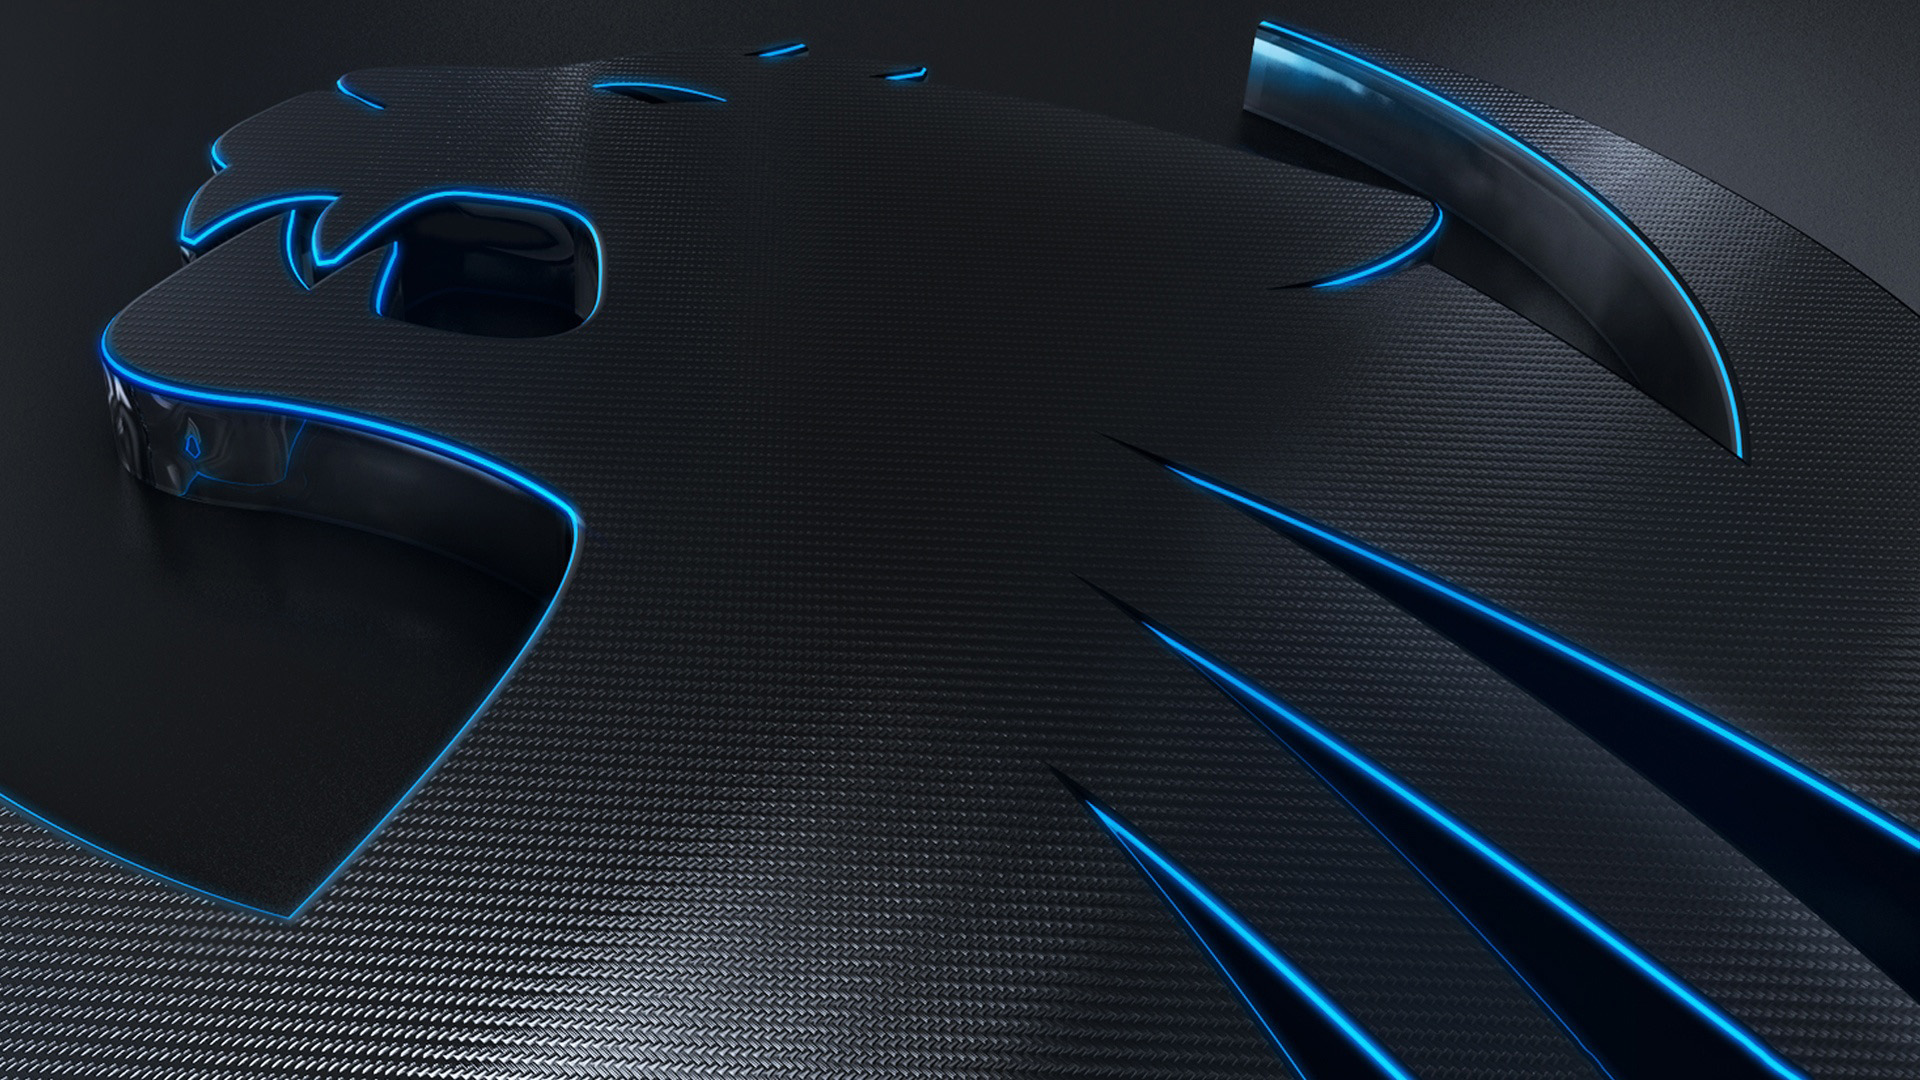 Abstract Black And Blue Hd Wallpaper